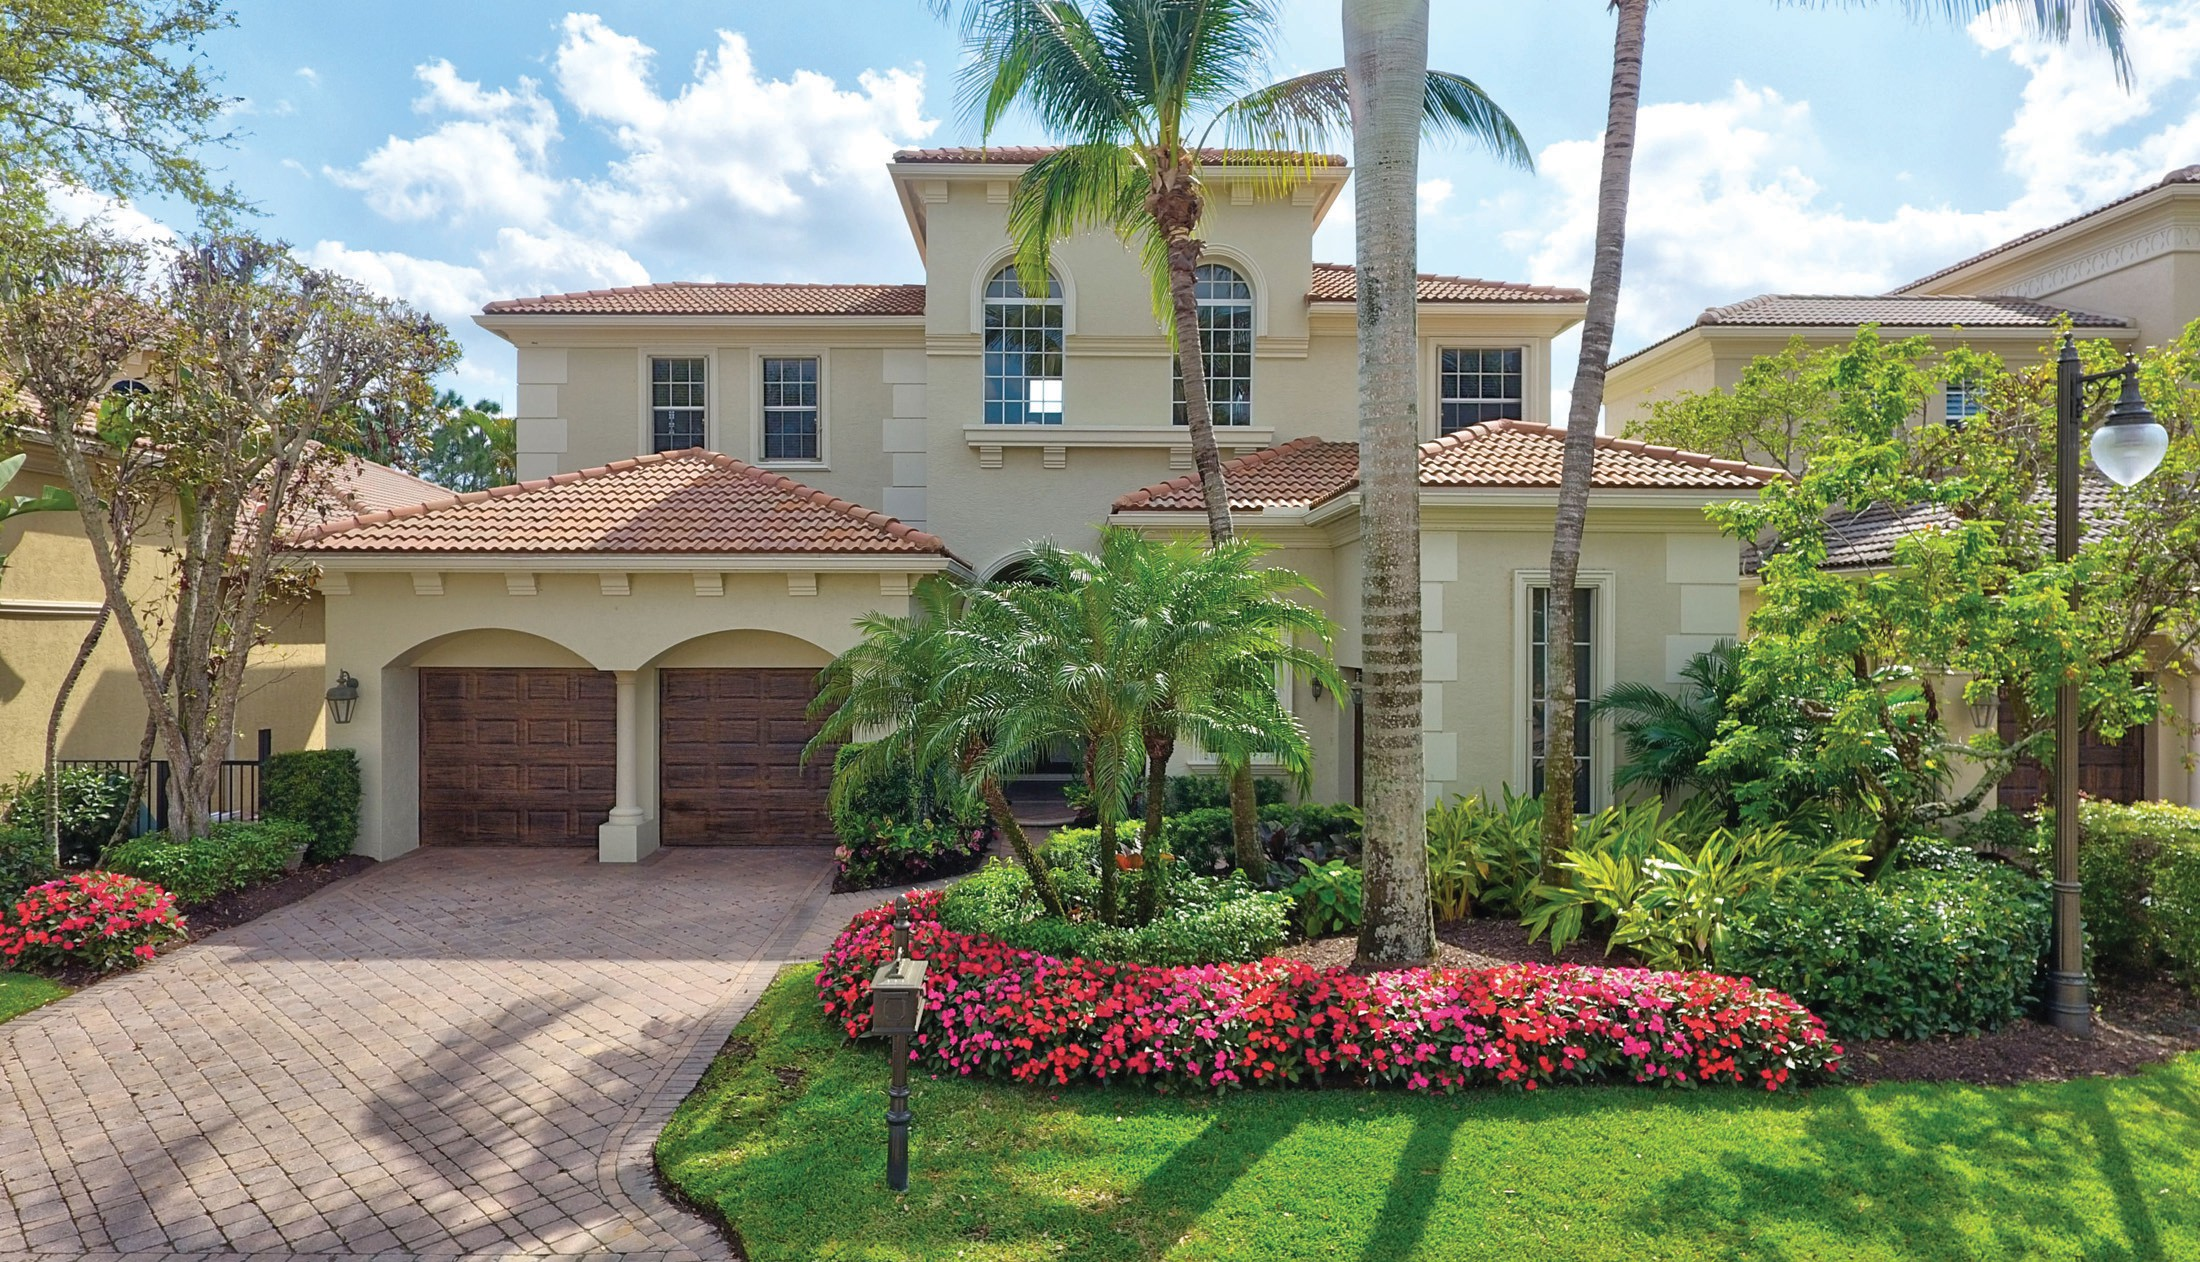 Mirasol magnificence | Palm Beach Florida Weekly